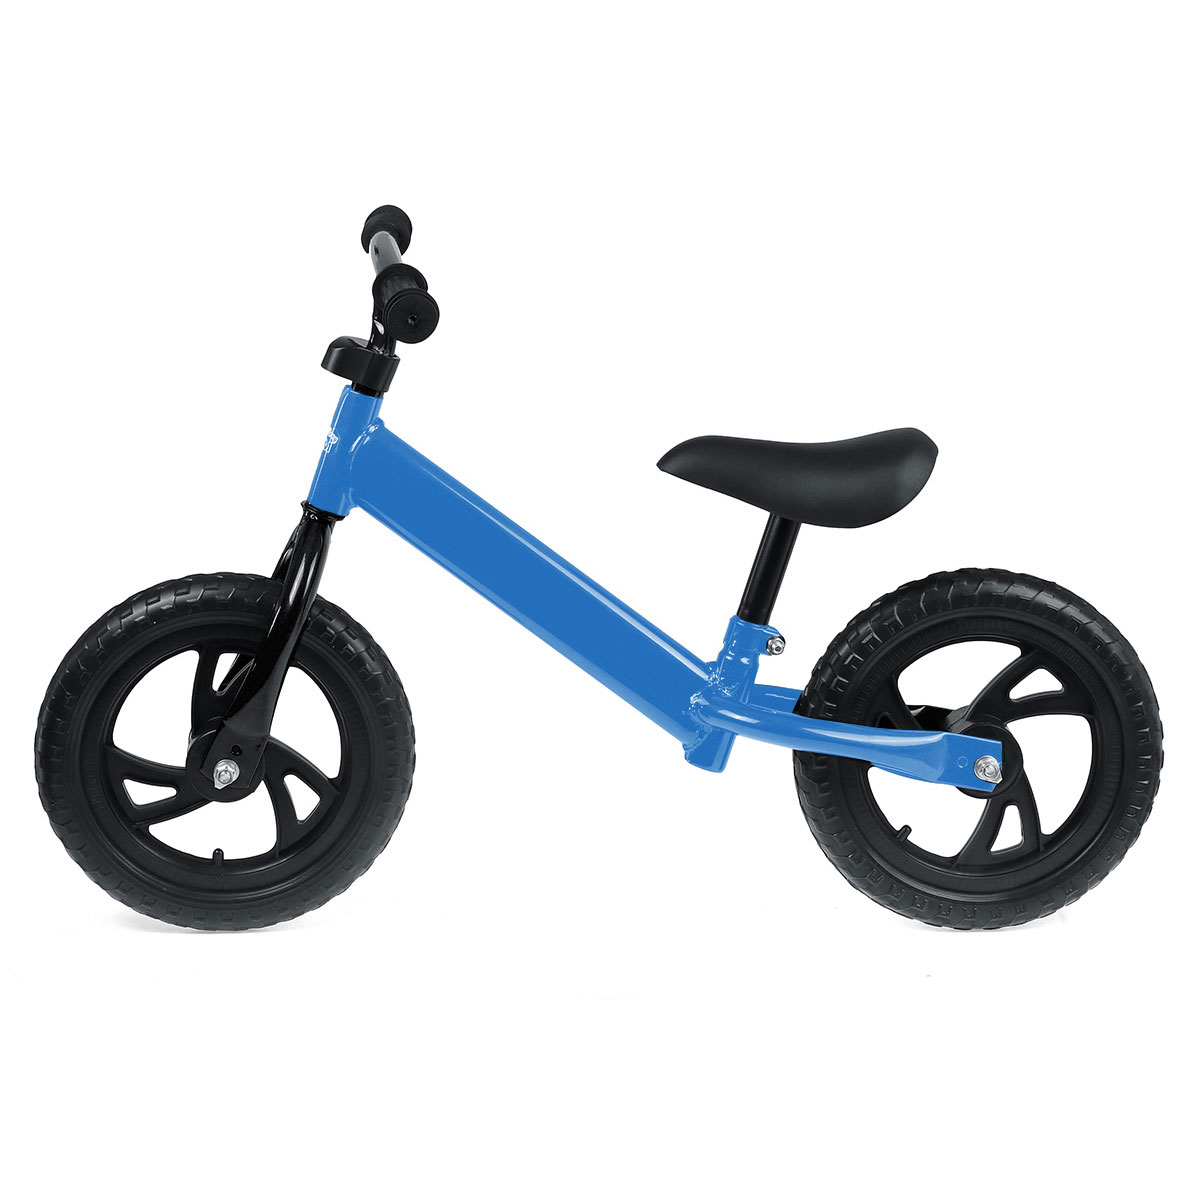 Children's Balance Bike Kids Learning Walker Bicycle Ride Without Pedal Baby or 3-6 Years Old Scooter or 3-6 Years Old